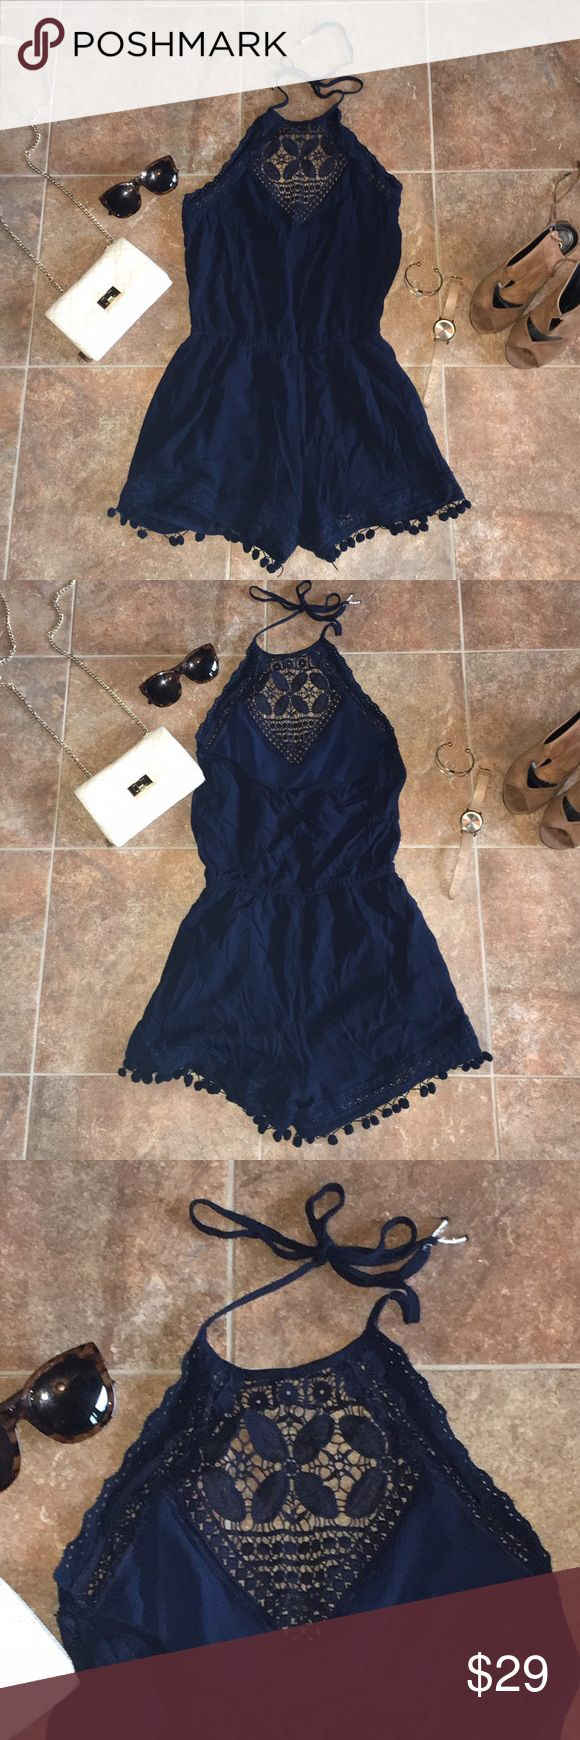 American Eagle Halter Romper American Eagle navy blue Halter top Romper with lace top and ball frills on bottom. Thick, quality material with extra layer underneath the bottom half. Excellent used condition!! Only worn a couple times. Size Small. American Eagle Outfitters Dresses Backless